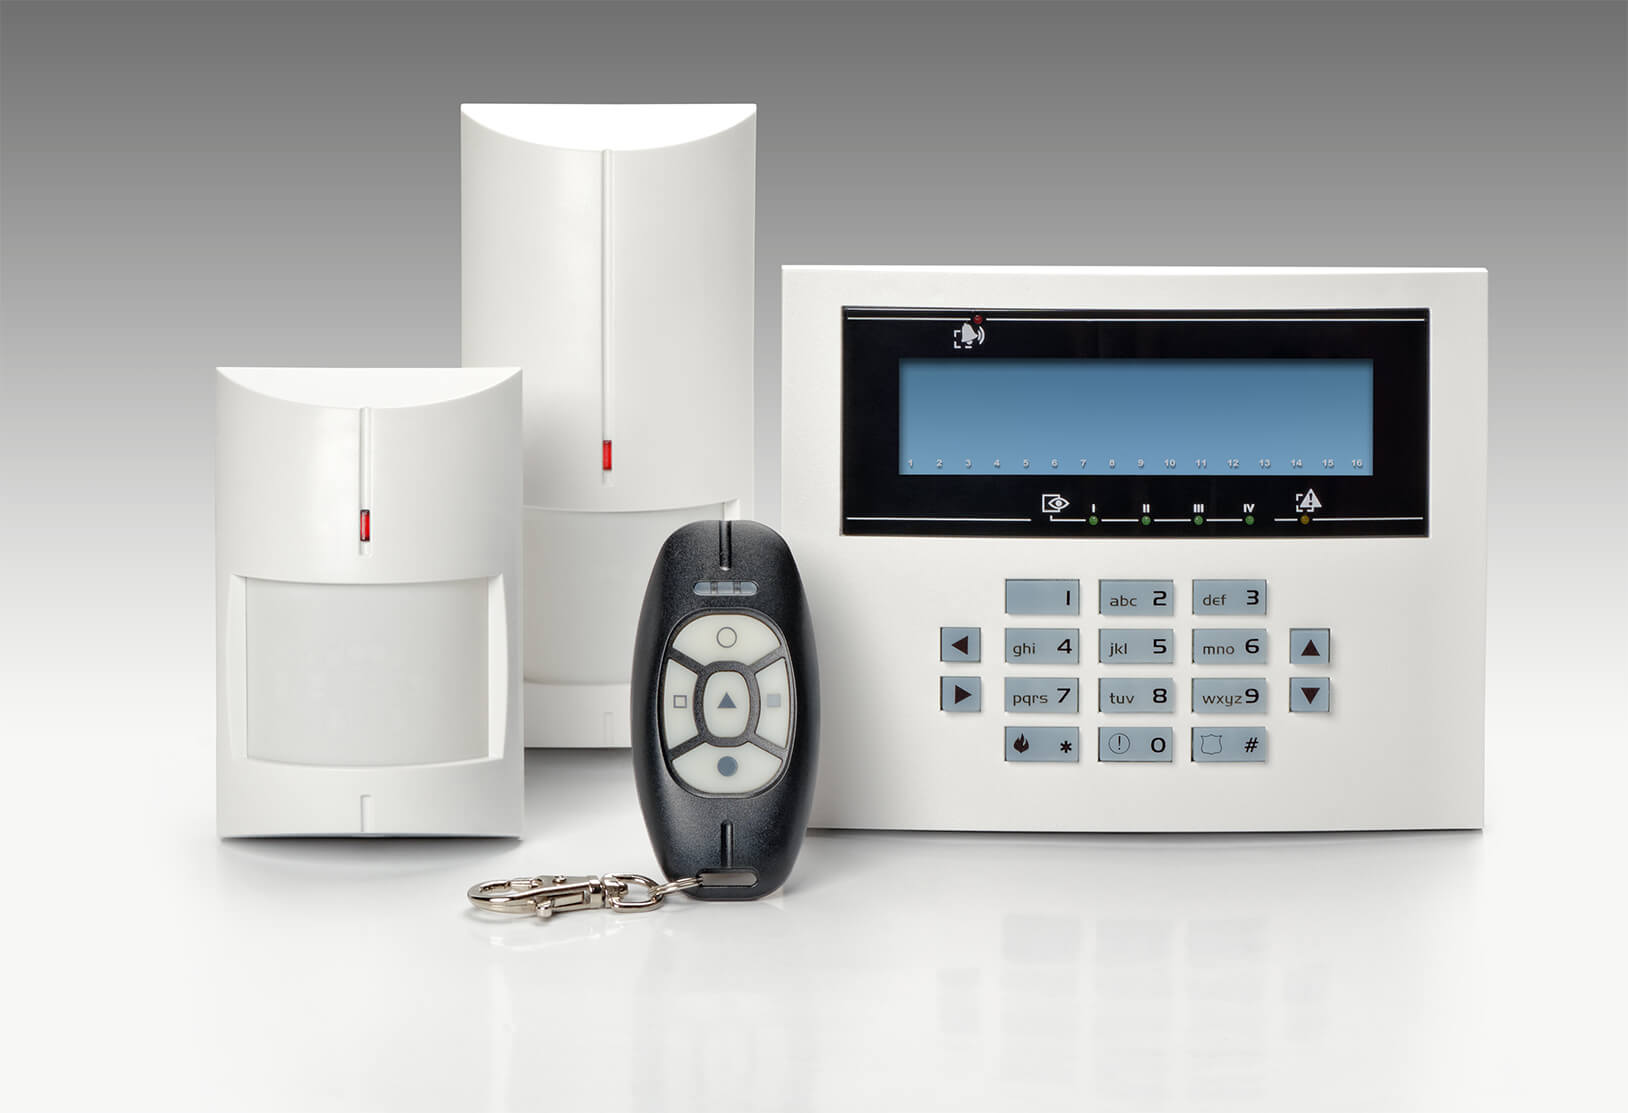 Burglar Alarms Repair in South Woodford E18 - Local South Woodford E18 alarm engineers.Call 02078872244 - See cost/price for burglar alarm repair and book your alarm engineer. No Hidden charges,No Contracts, Book as you need.Engineers on demand.All alarm makes repaired.Same day service ability.